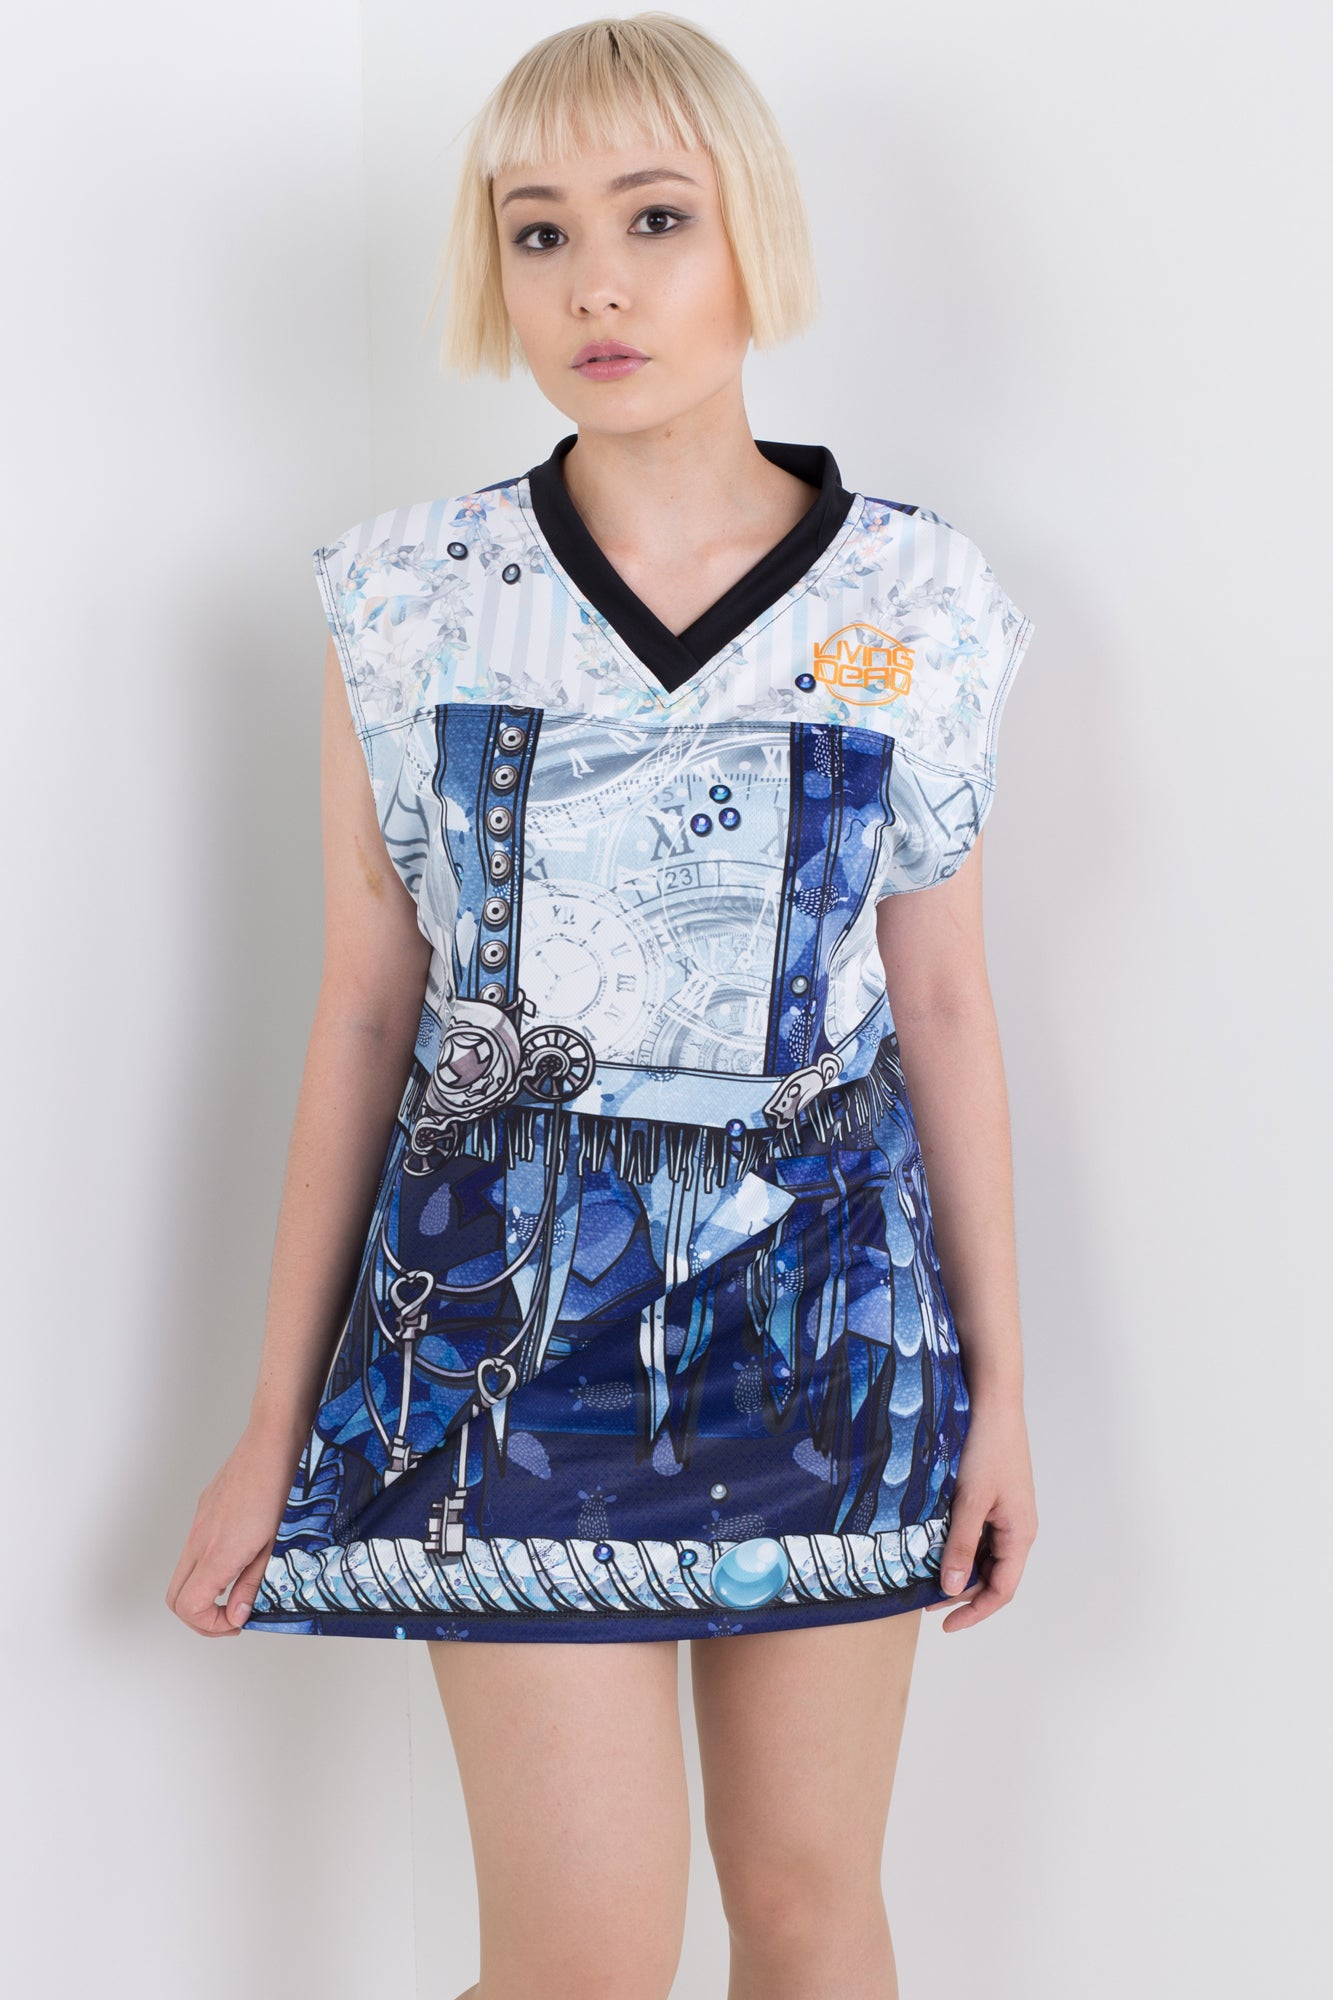 Punk Princess Cinderella Sleeveless Hail Mary